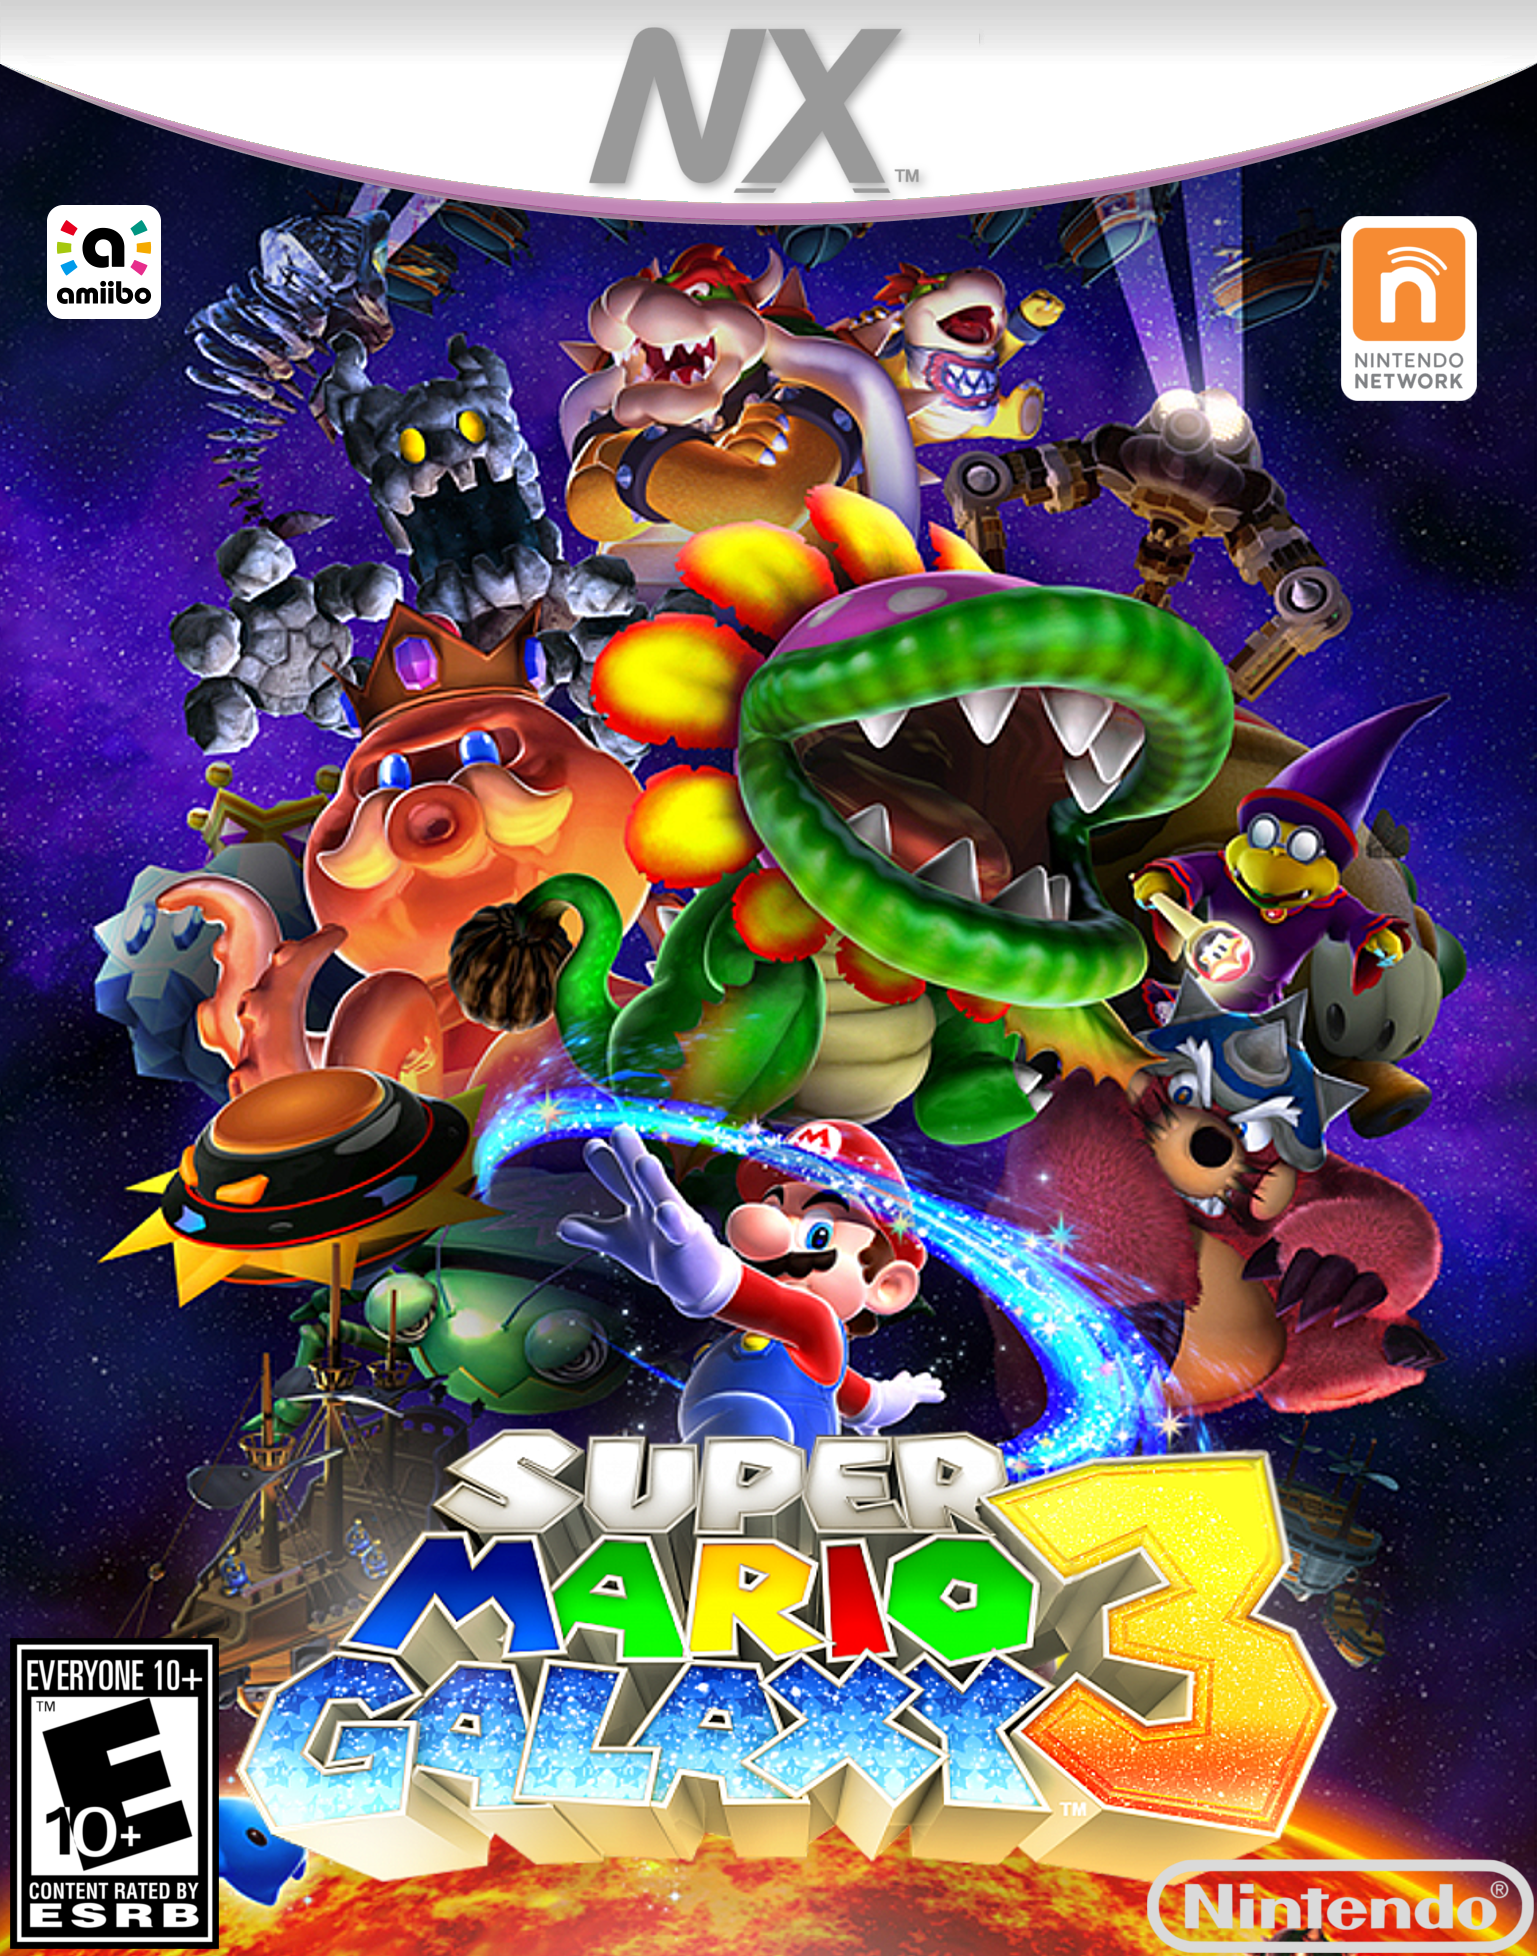 Super Mario Galaxy 3 NX